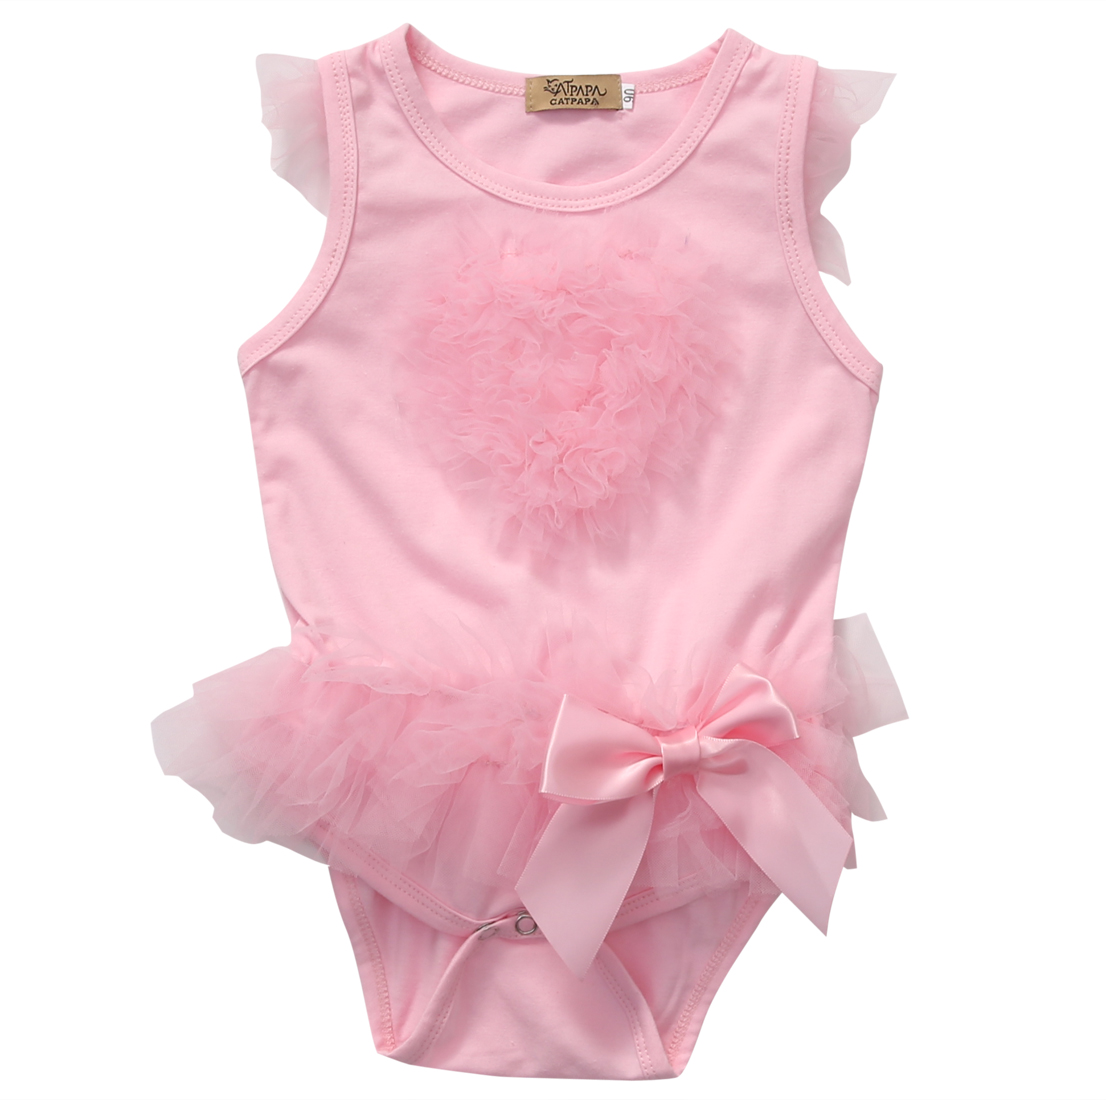 Newborn Kids Baby Girl Infant Romper Jumpsuit Tutu Dress Clothes Outfit newborn infant baby girl clothes strap lace floral romper jumpsuit outfit summer cotton backless one pieces outfit baby onesie